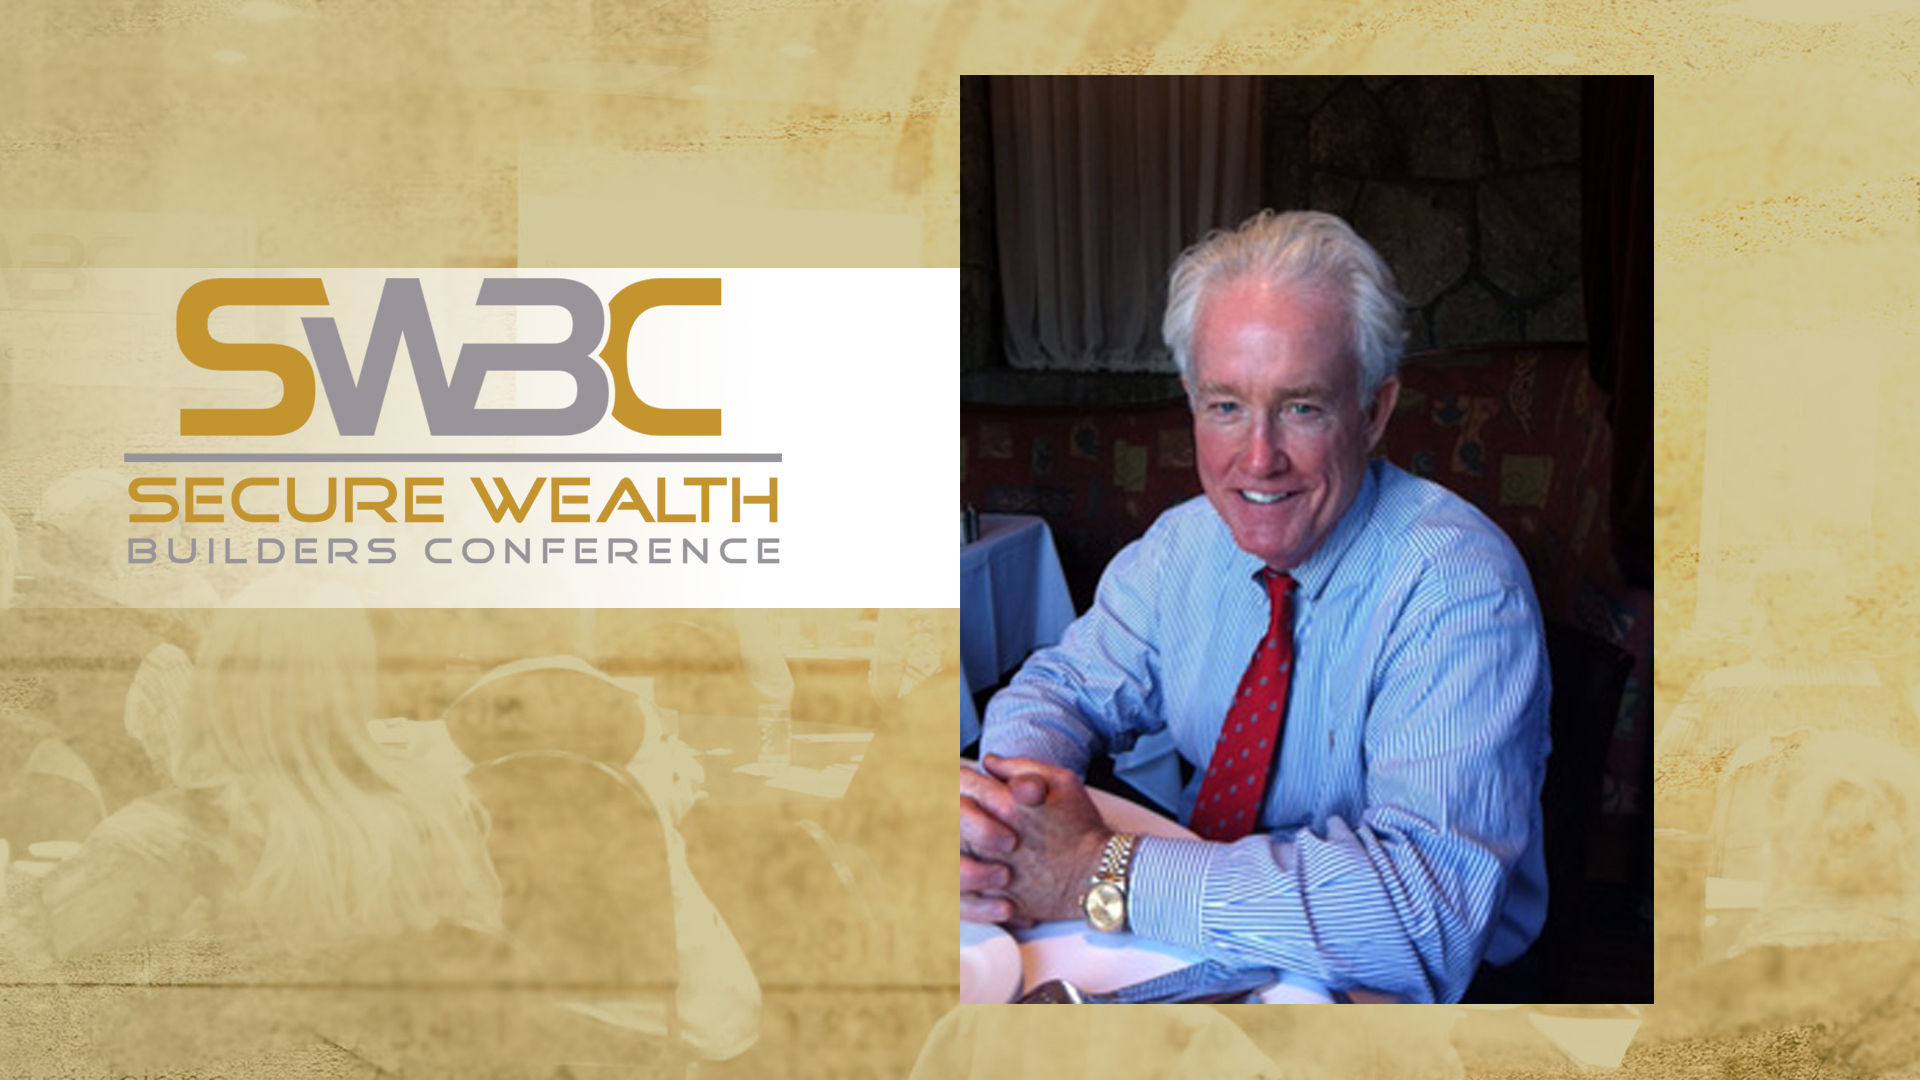 Barry James Dyke - Featured Speaker at Secure Wealth Builders Conference